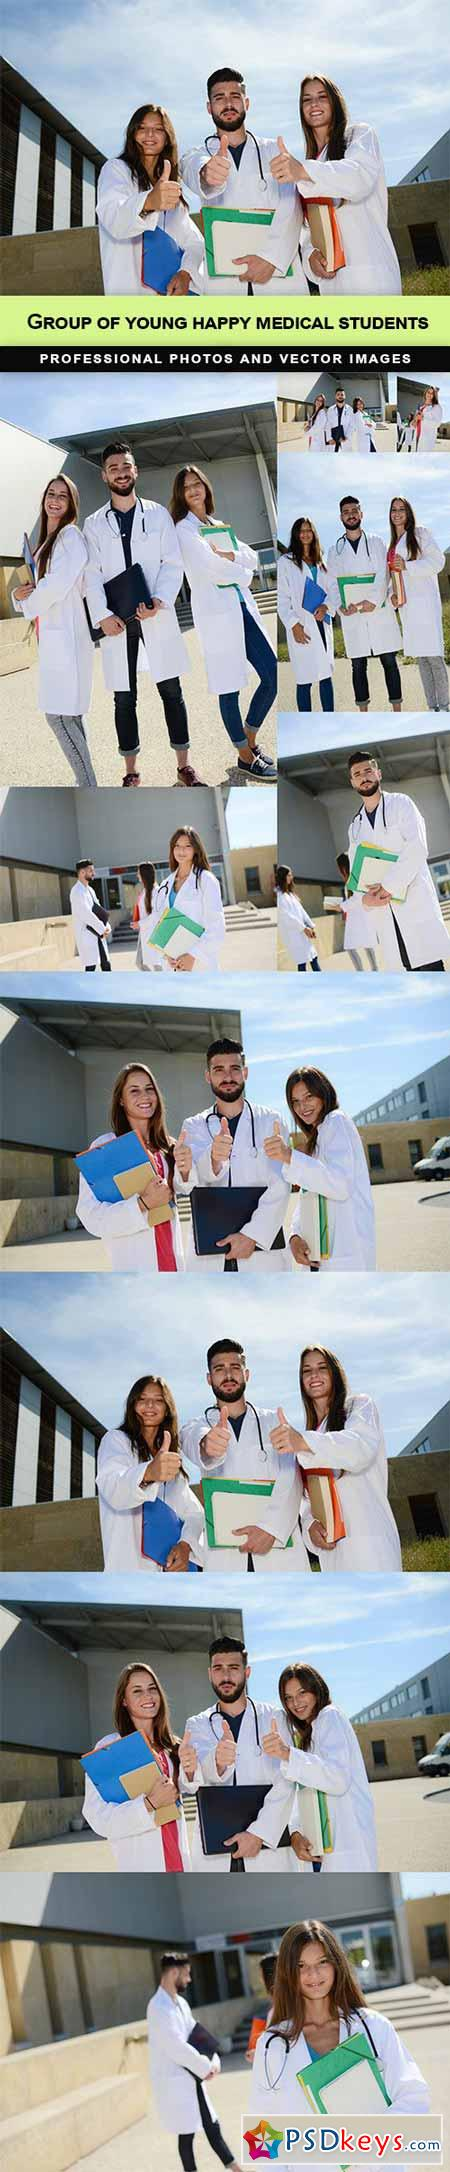 Group of young happy medical students - 10 UHQ JPEG